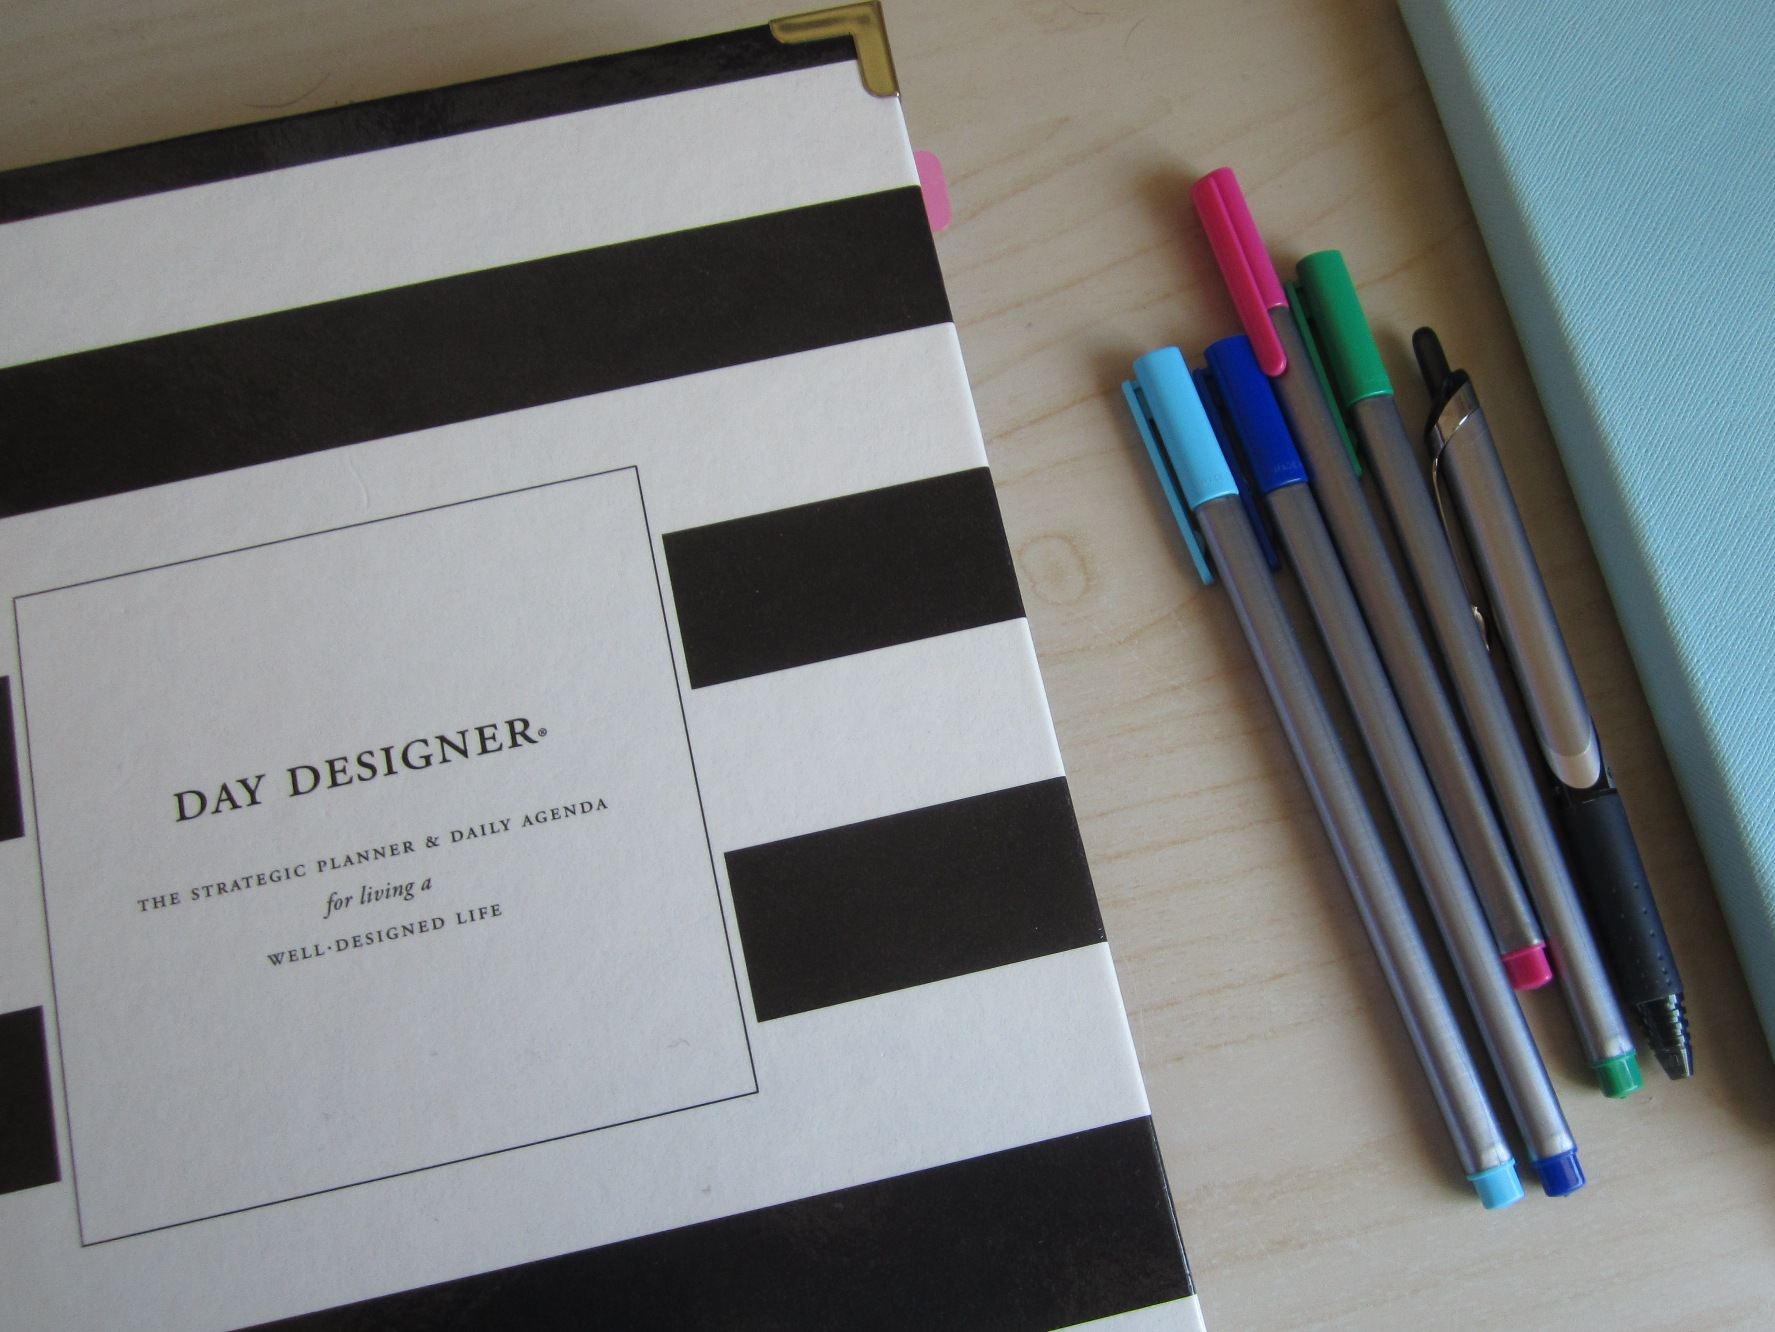 photograph regarding Day Designer Planners referred to as Working day Designer for Blue Sky Everyday Planner Evaluate